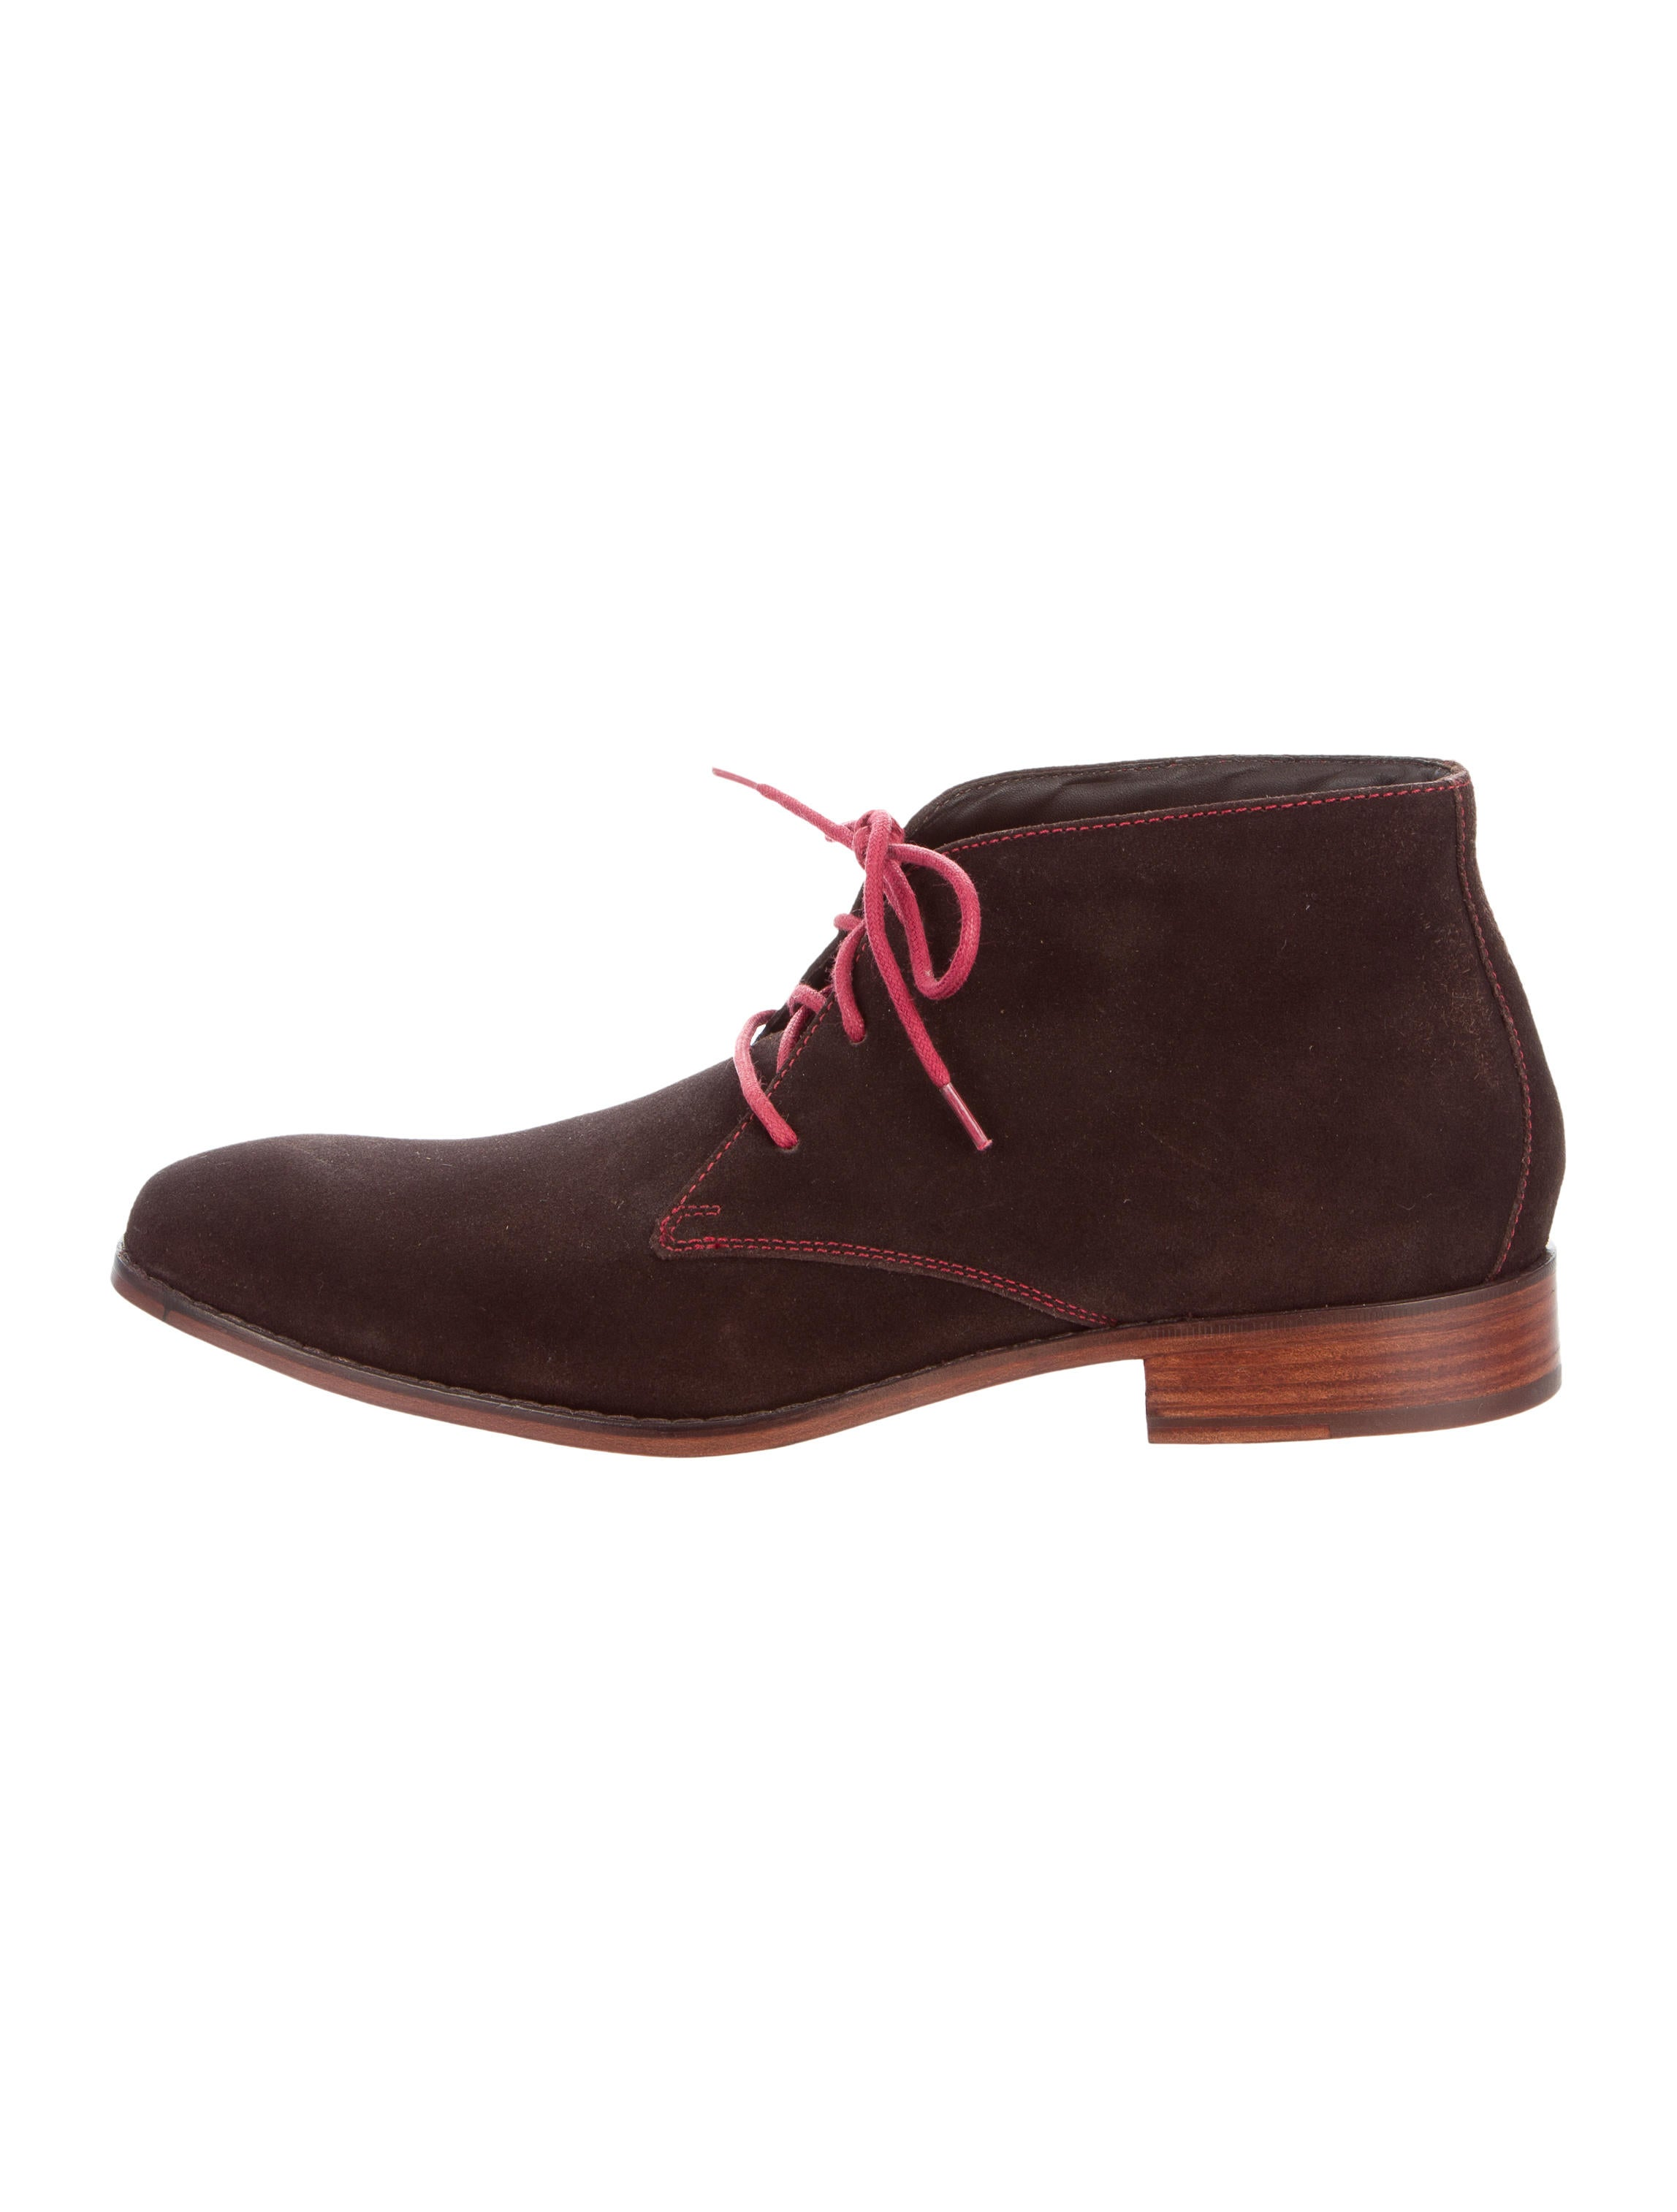 cole haan suede desert boots shoes w4920245 the realreal